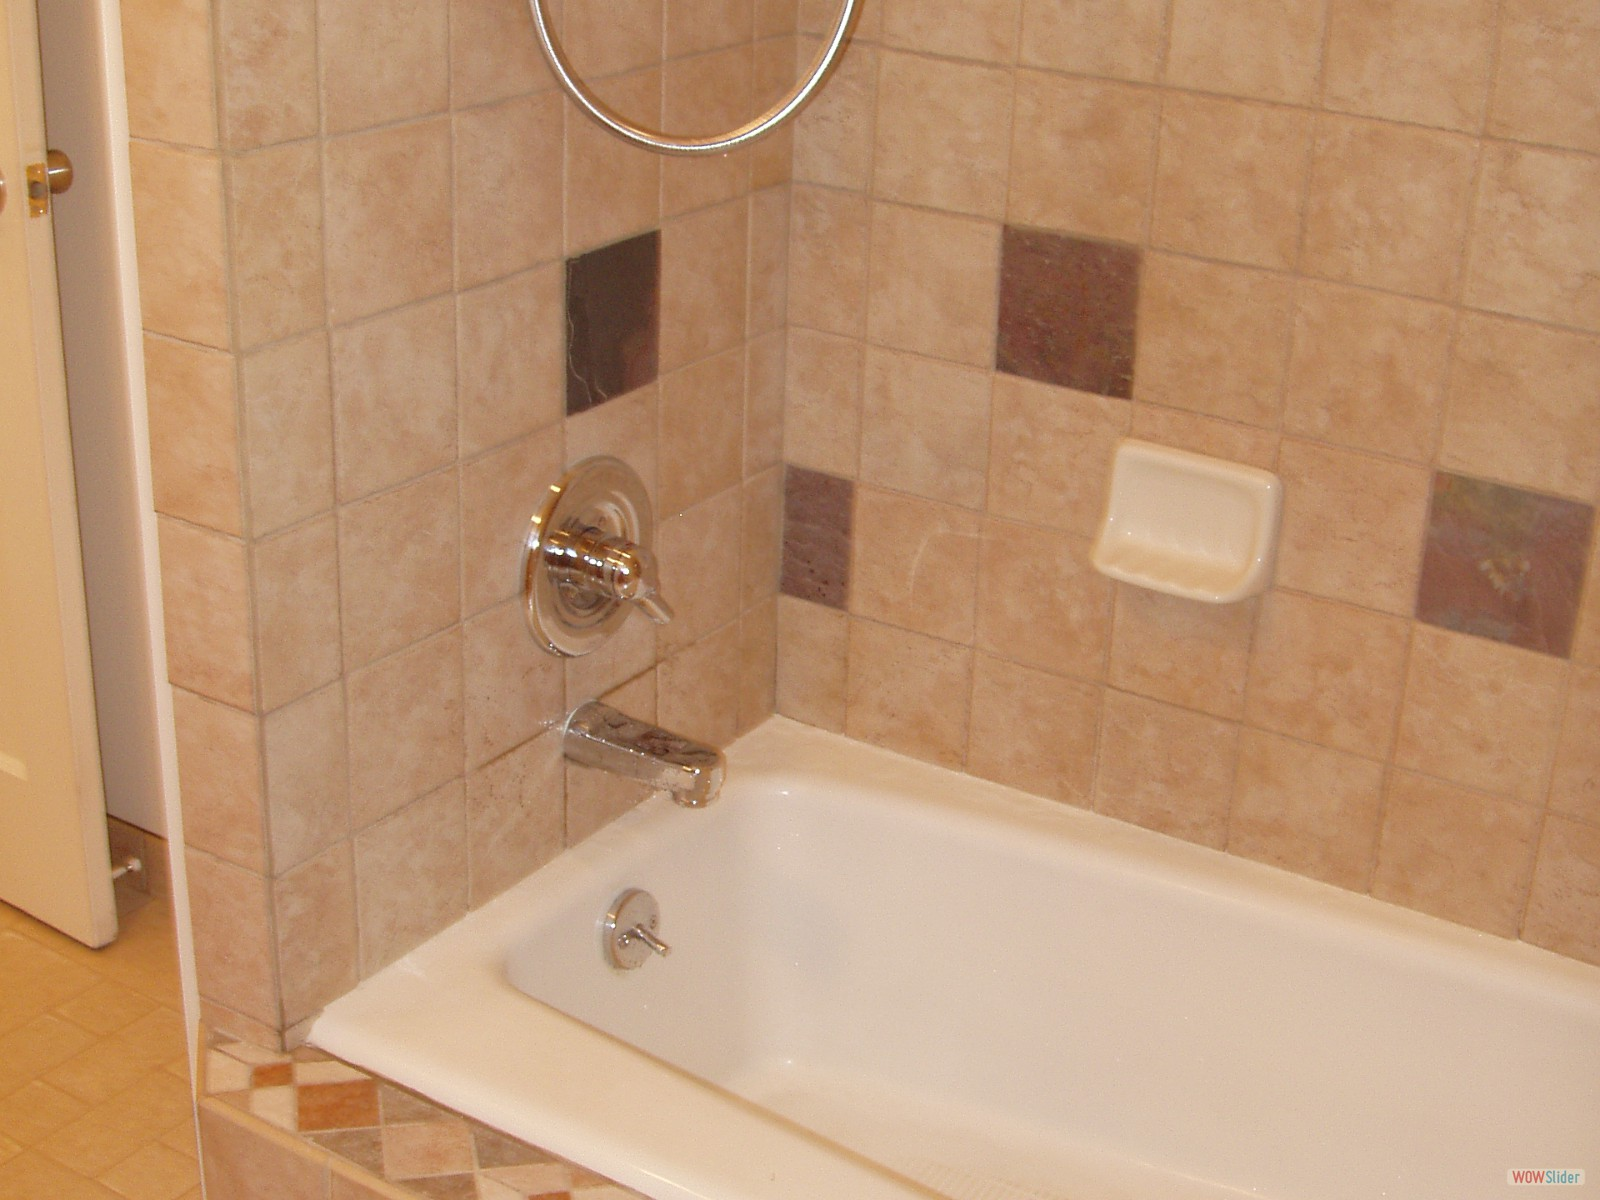 BATHROOM REMODEL - Tile